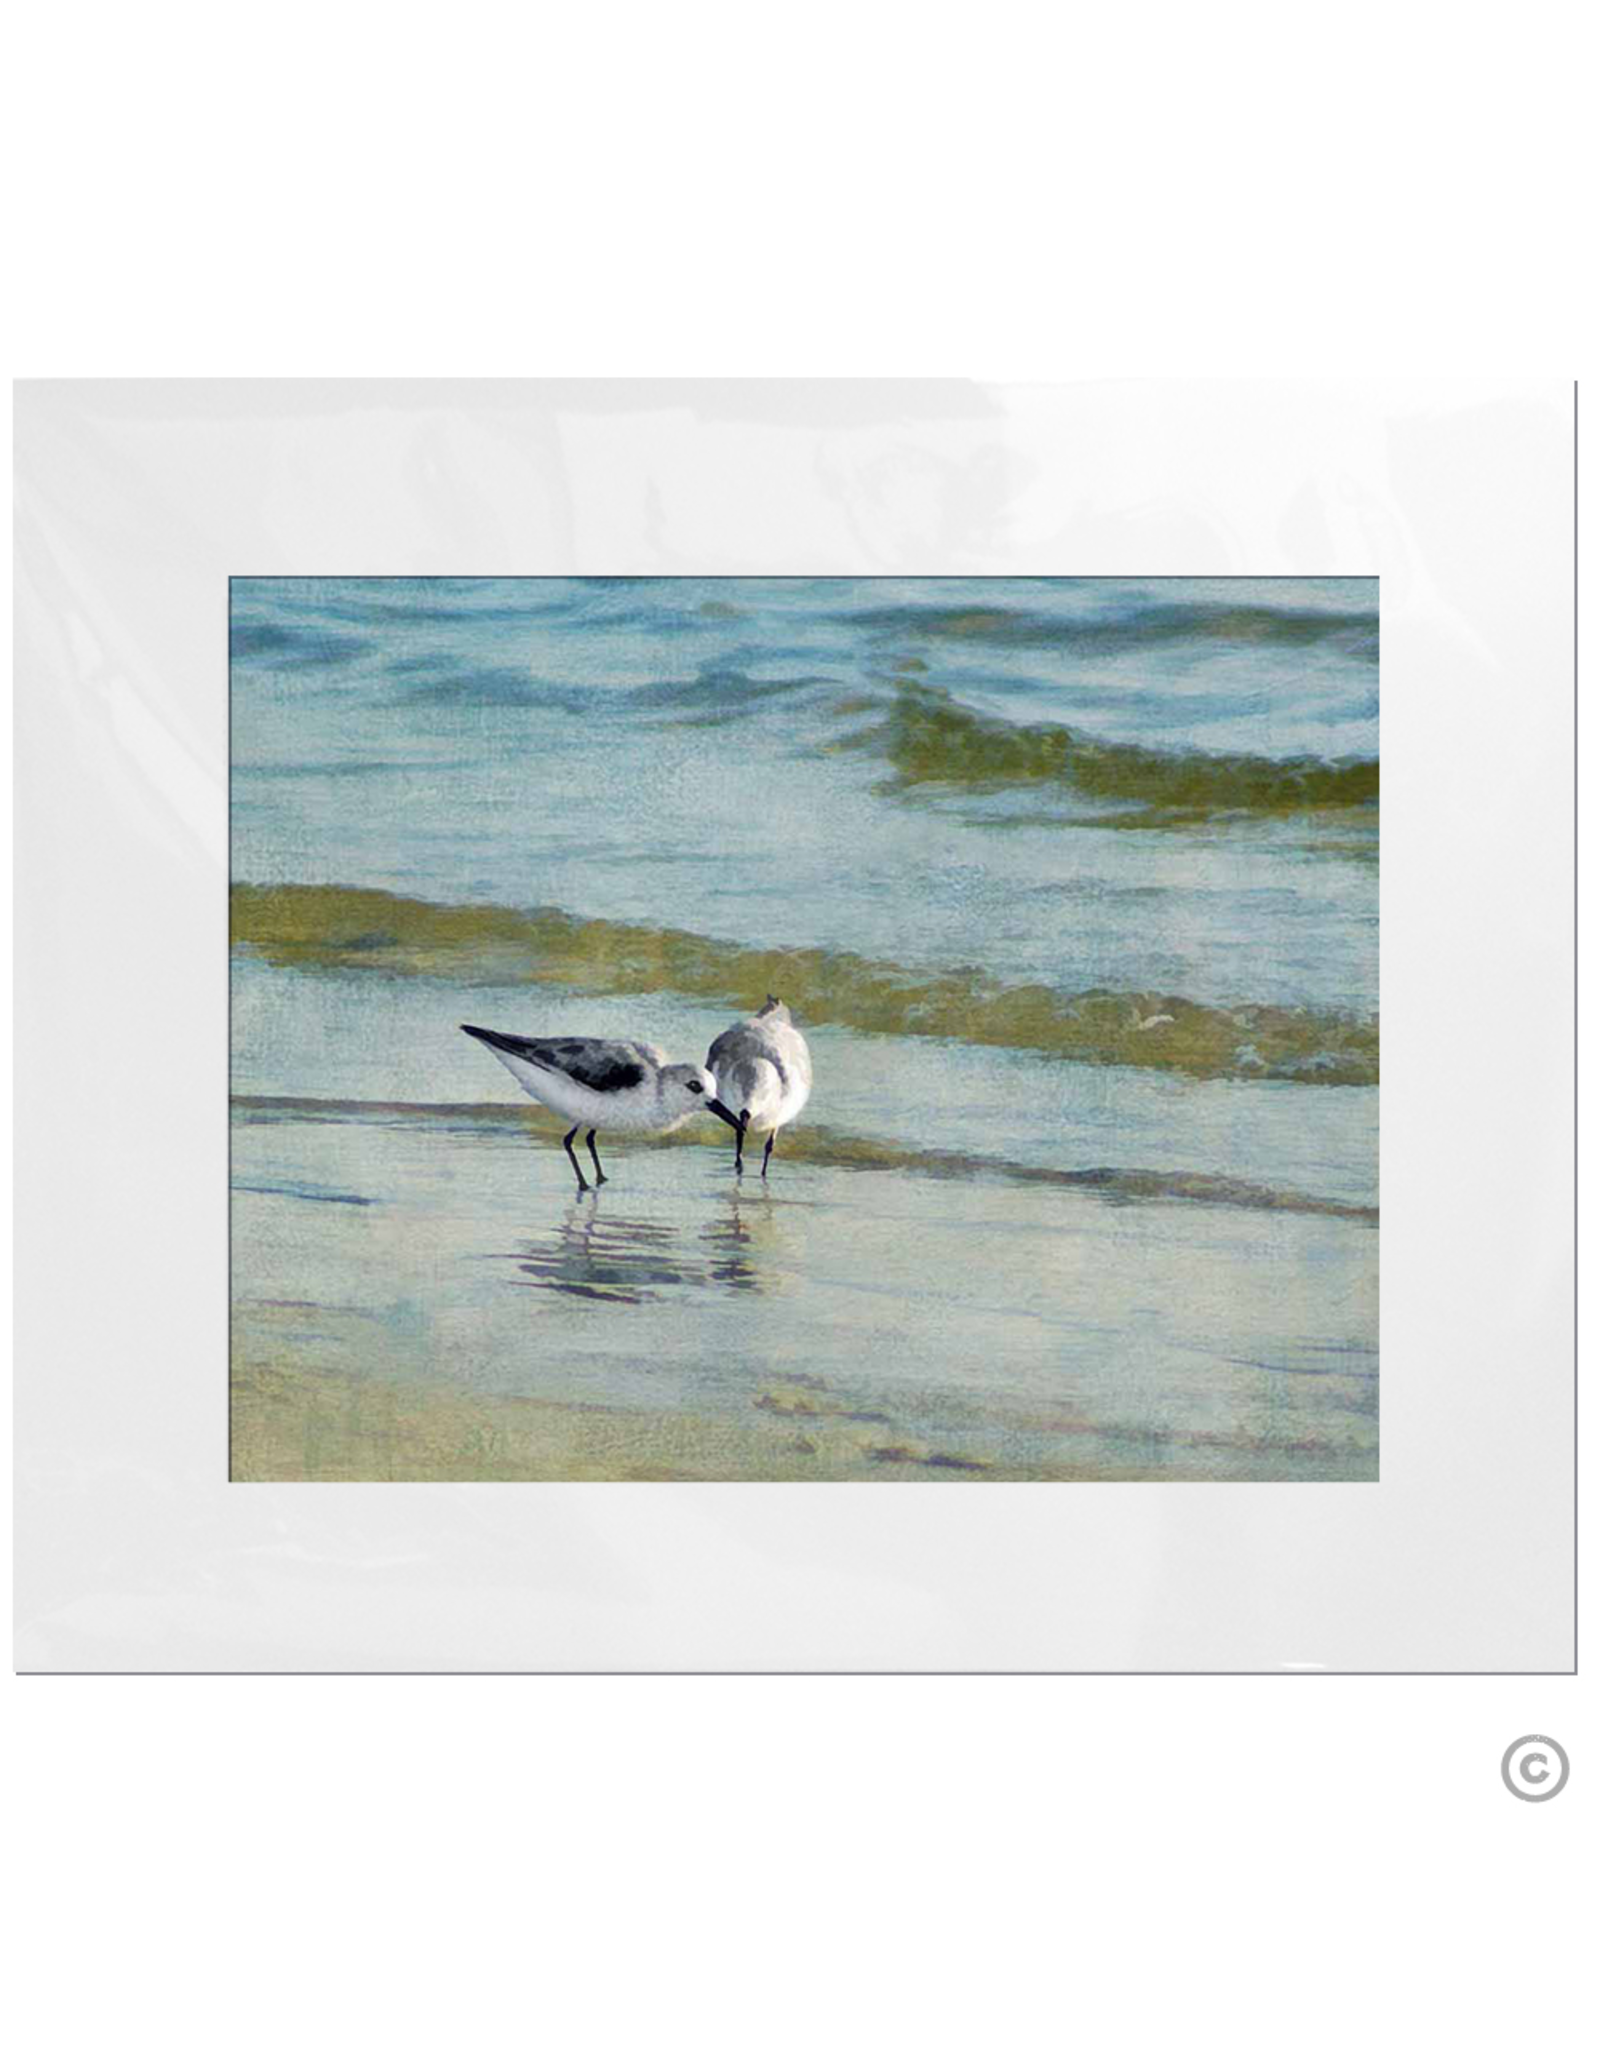 Maureen Terrien Photography Art Print 2 Sandpipers I 11x14 - 8x10 Matted